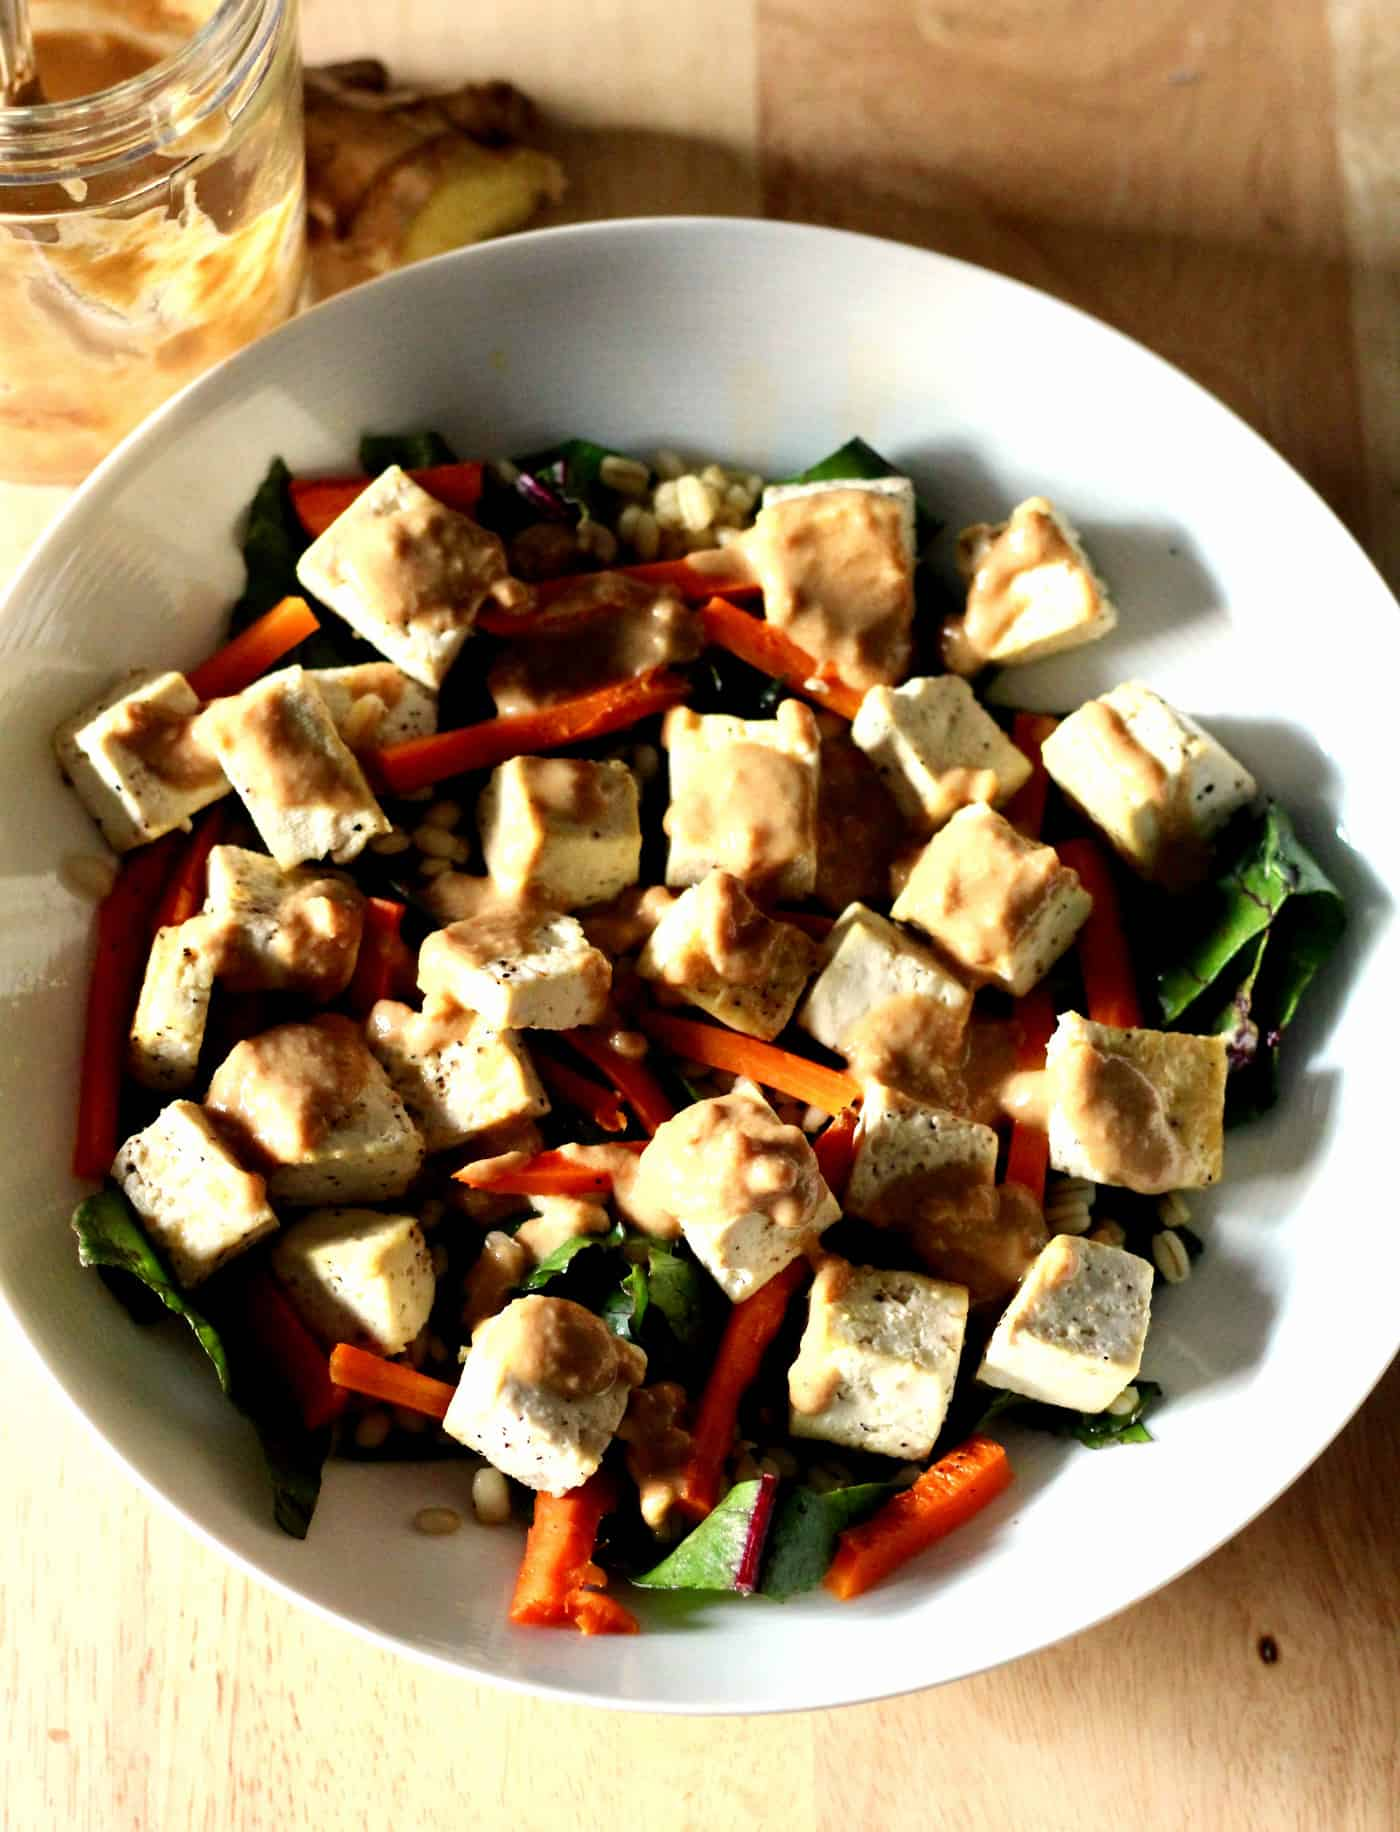 Roasted Tofu and Carrot Bowls with Ginger Peanut Sauce